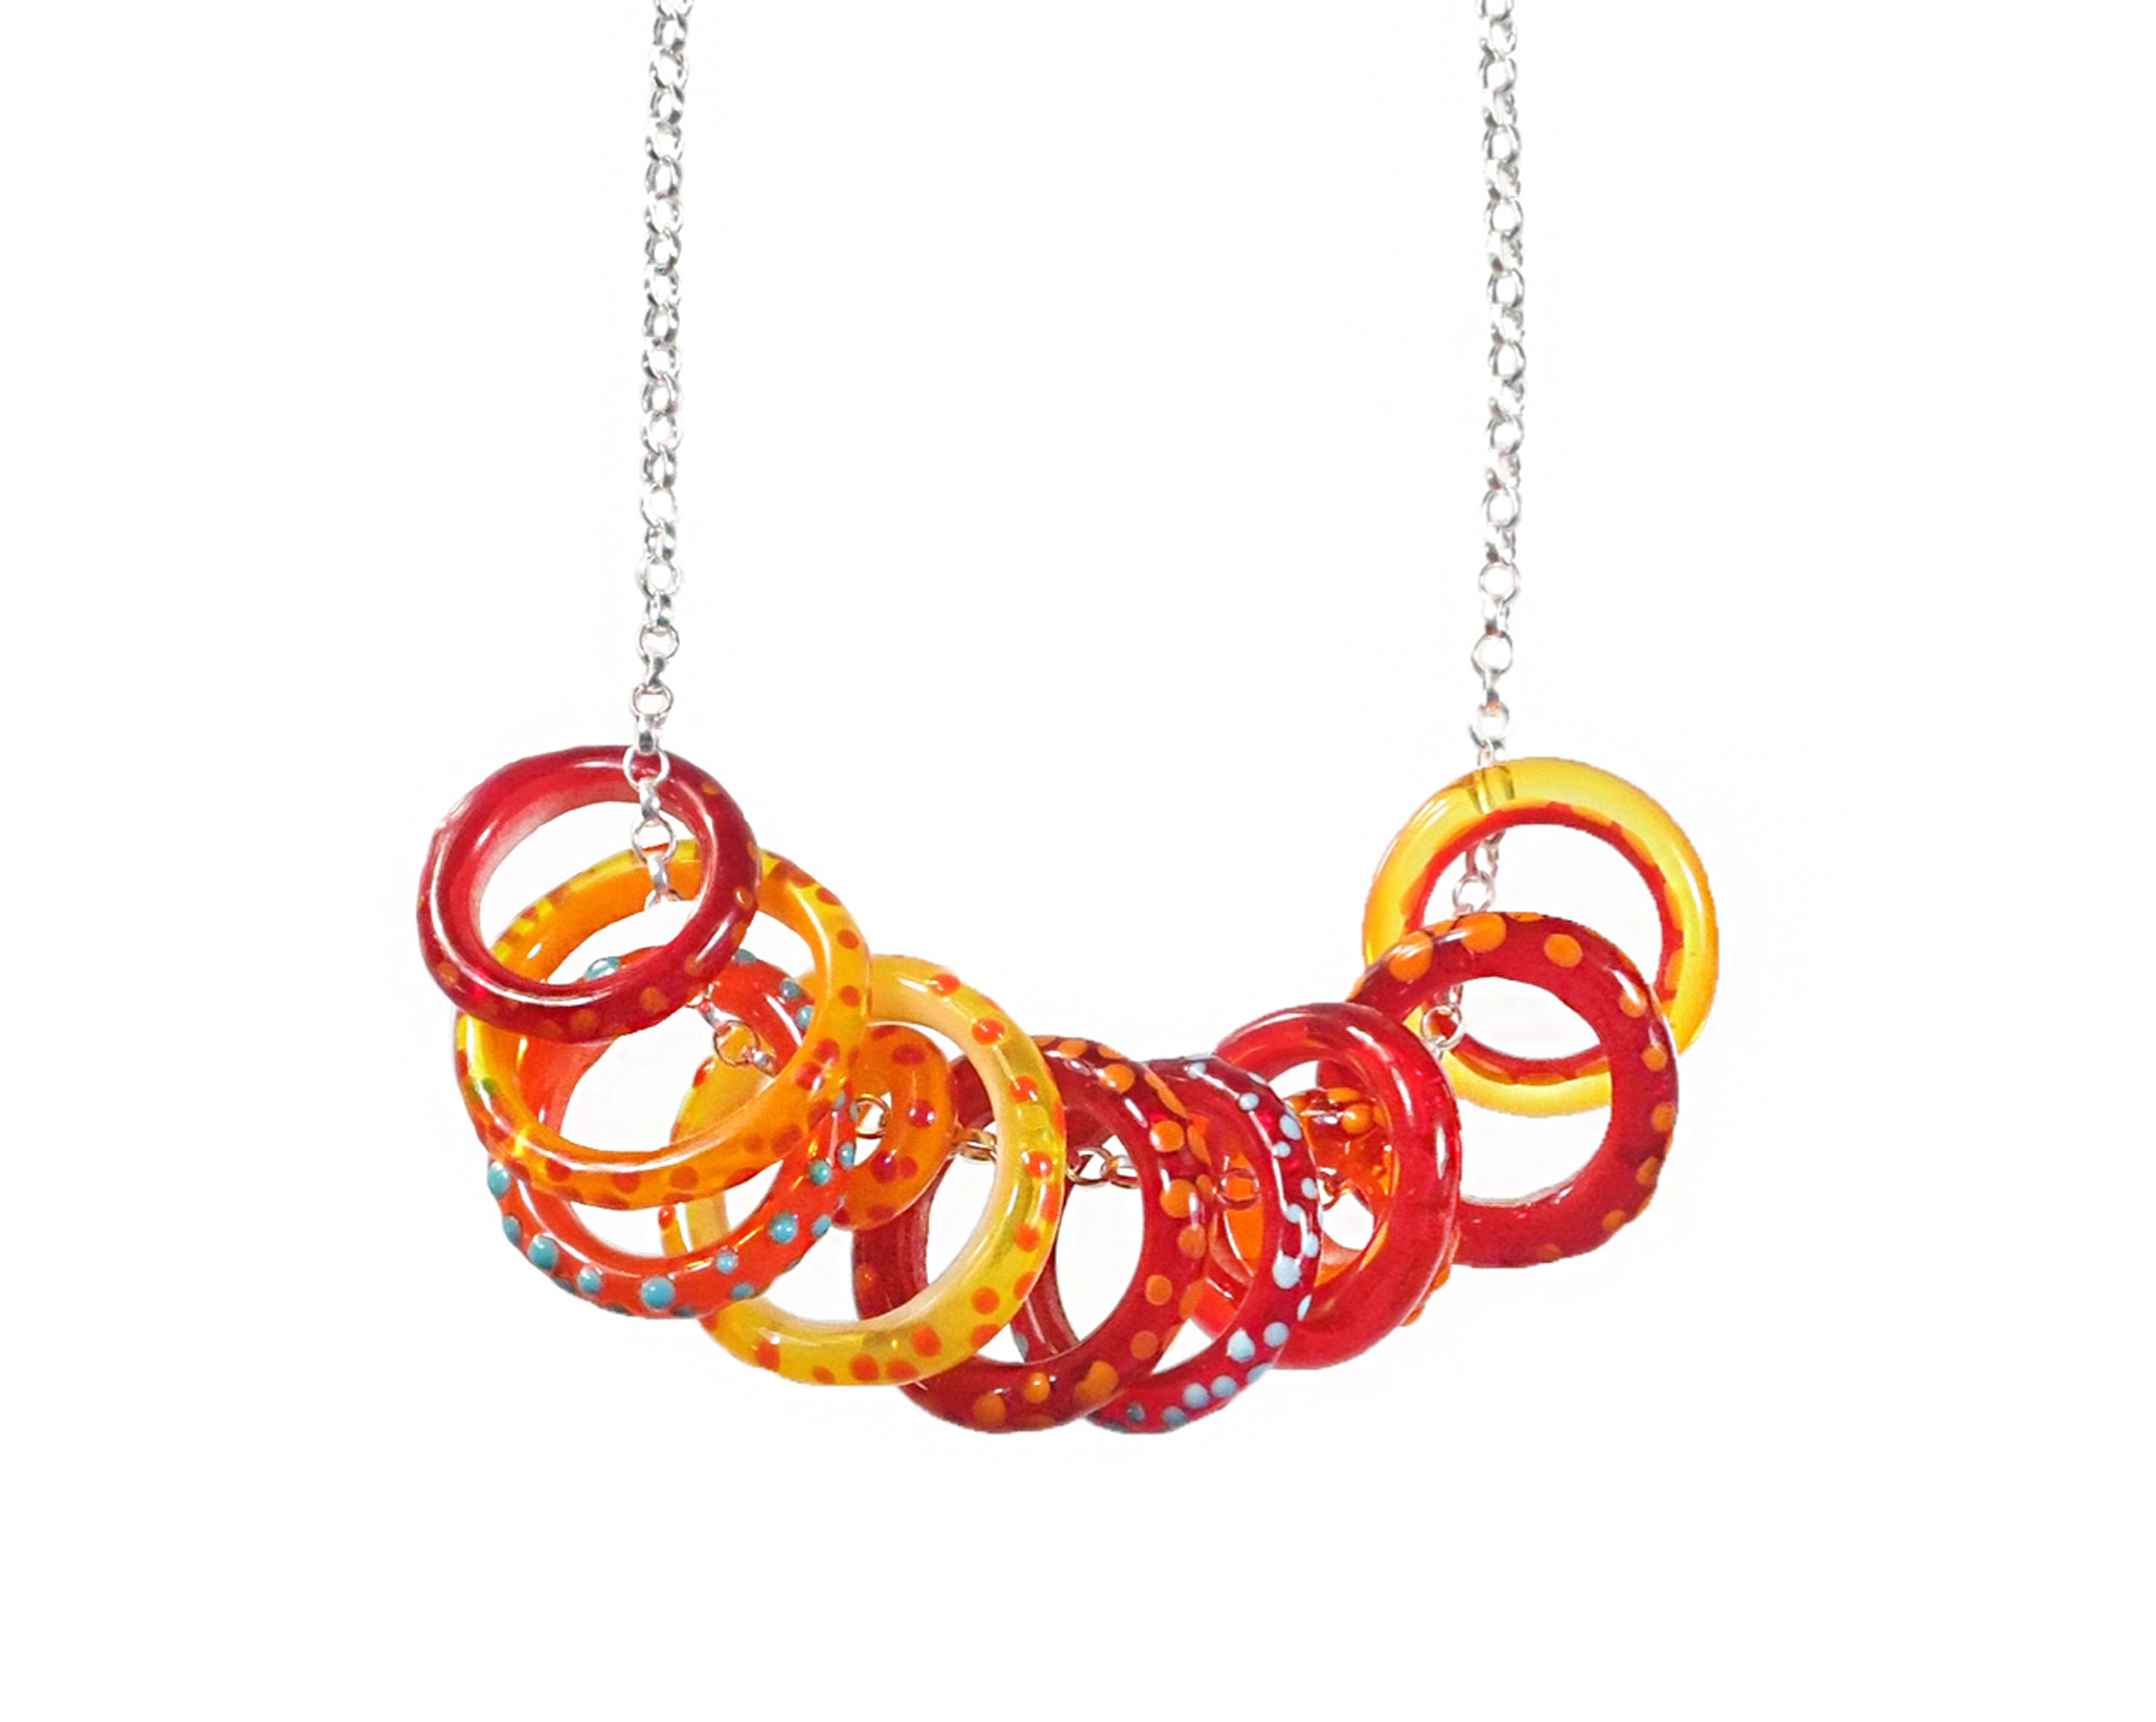 ringring necklace